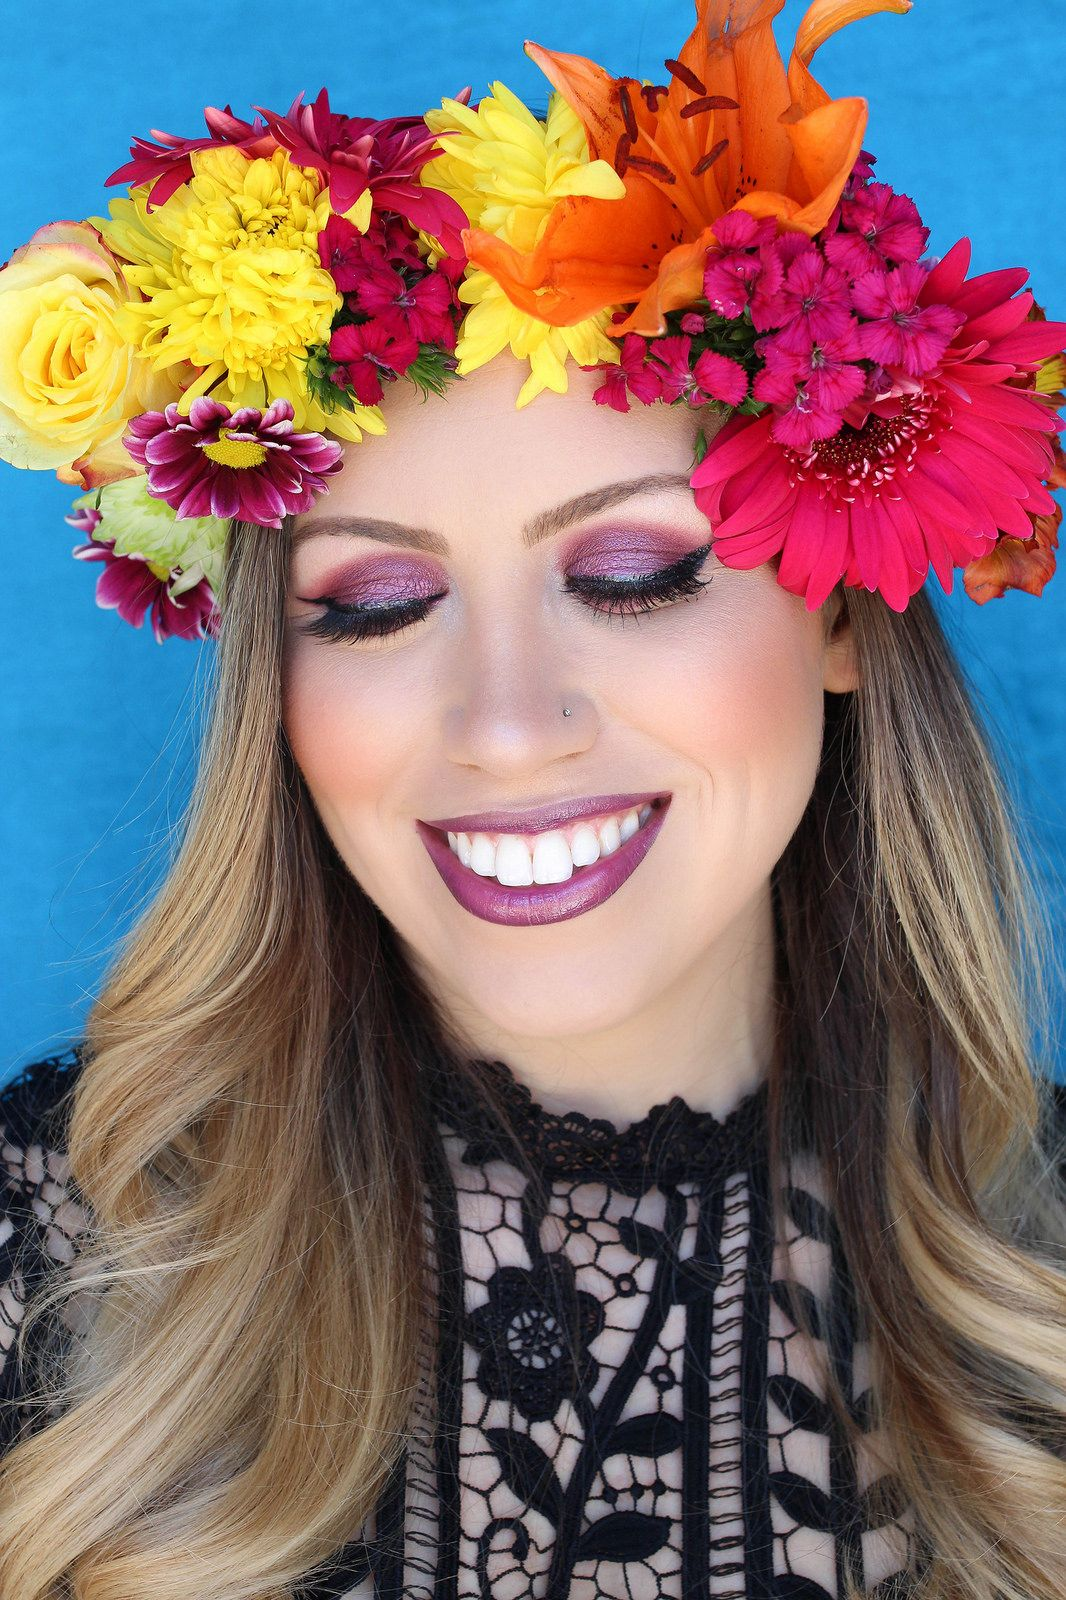 How to make a flower crown pinterest real flowers flower crowns how to make a flower crown easy diy real flower crown festive style inspired makeup izmirmasajfo